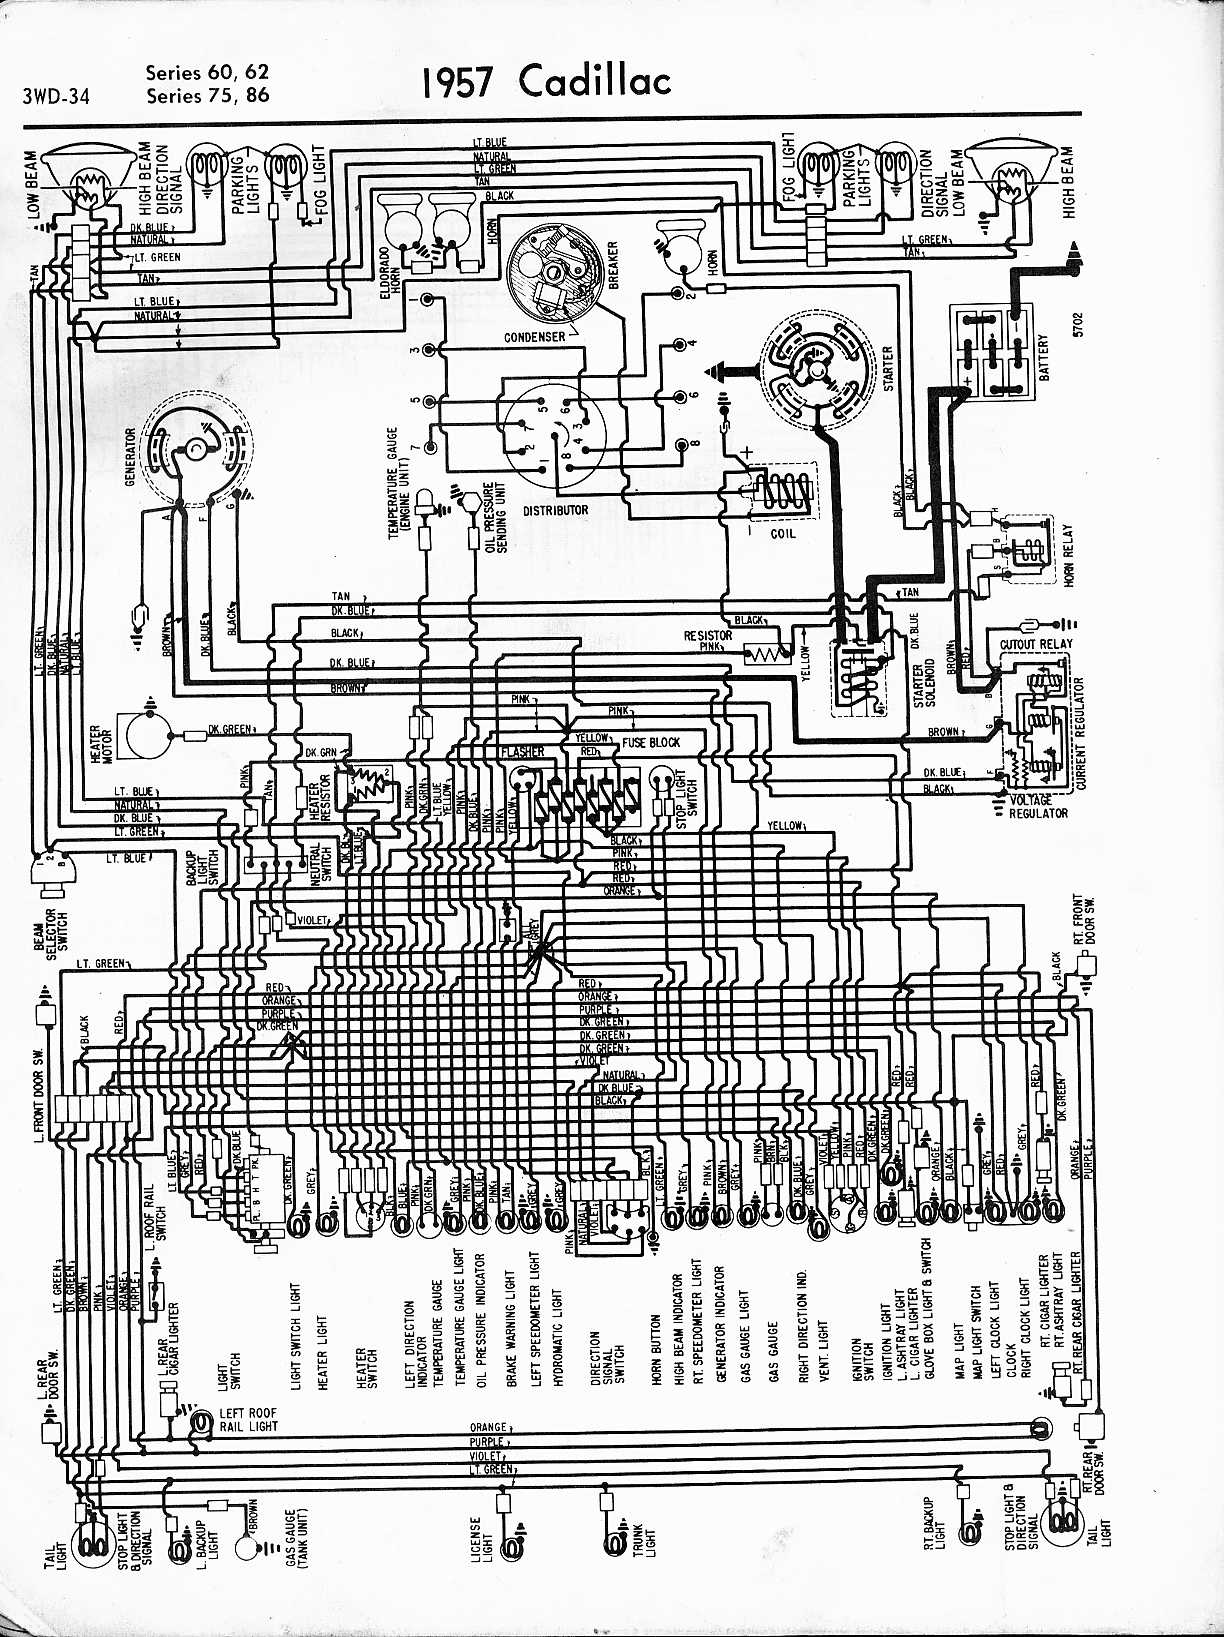 hight resolution of cadillac wiring diagram wiring diagrams wni wiring diagram for 1983 cadillac seville